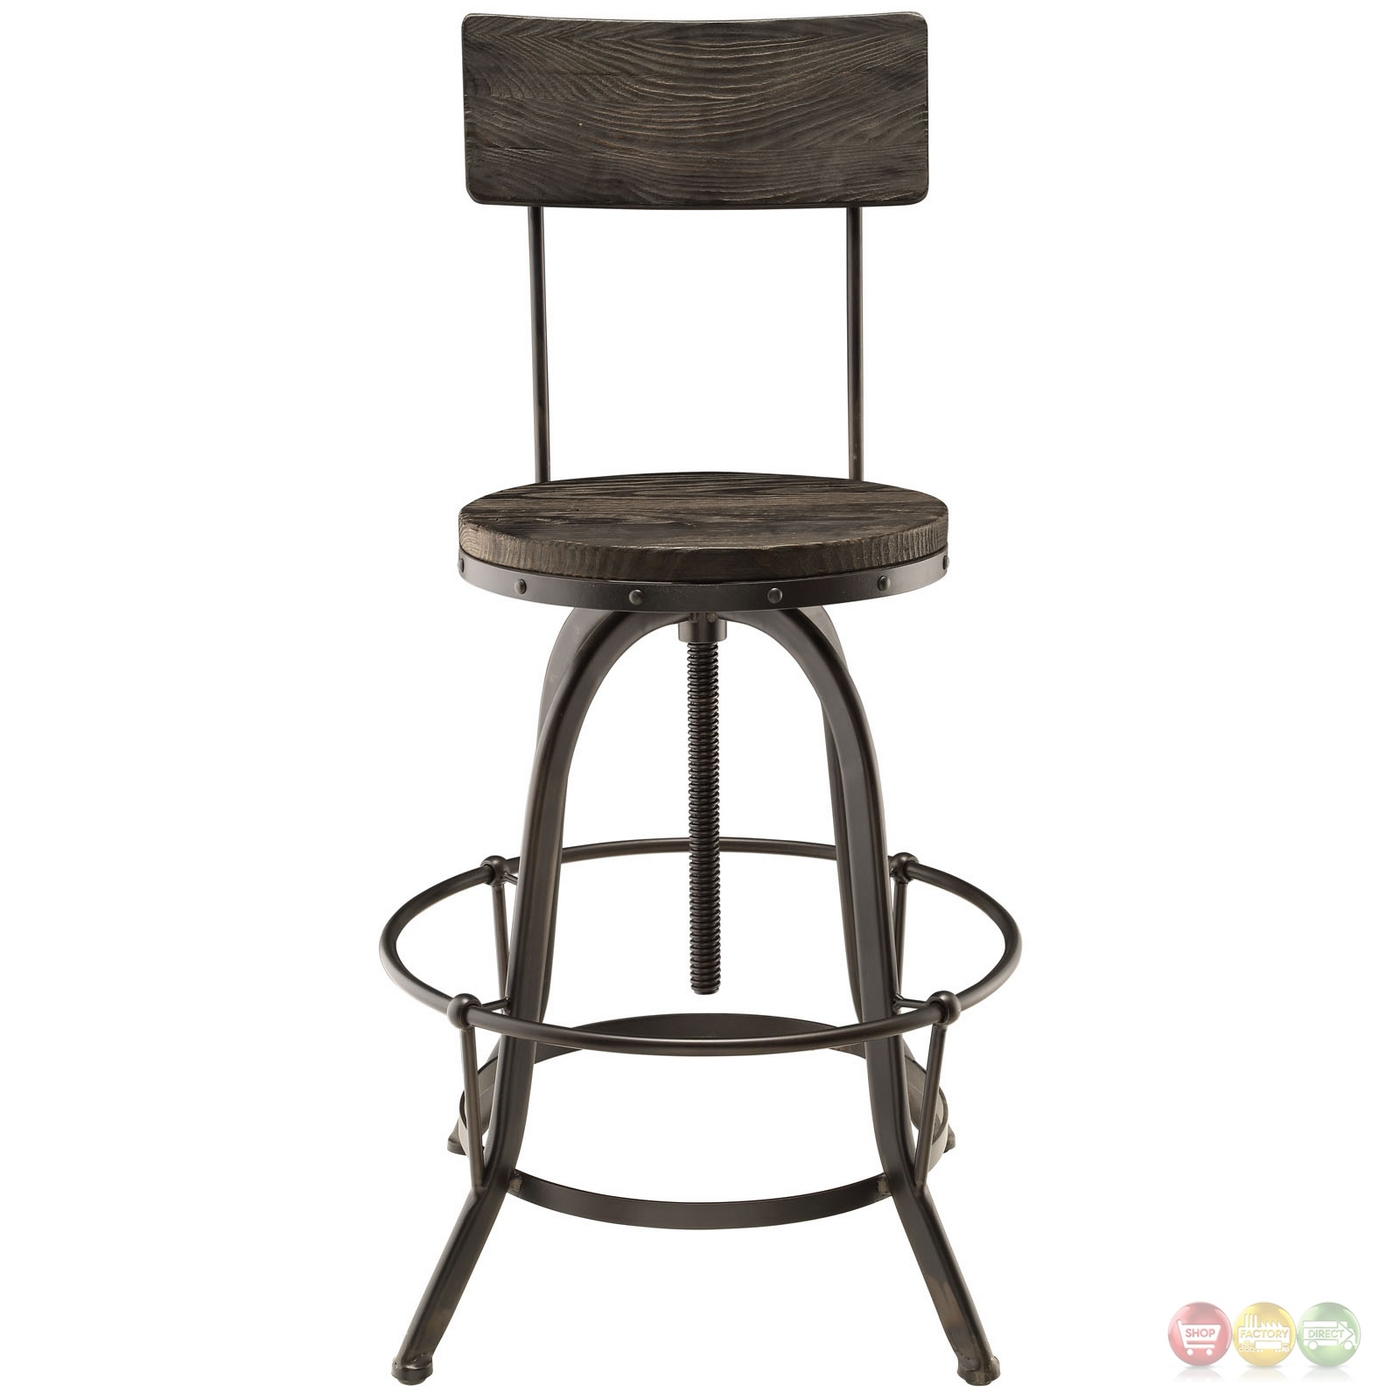 Industrial Bar Stools With Backs Set Of 4 Procure Industrial Bar Stool W Wood Seat Backs